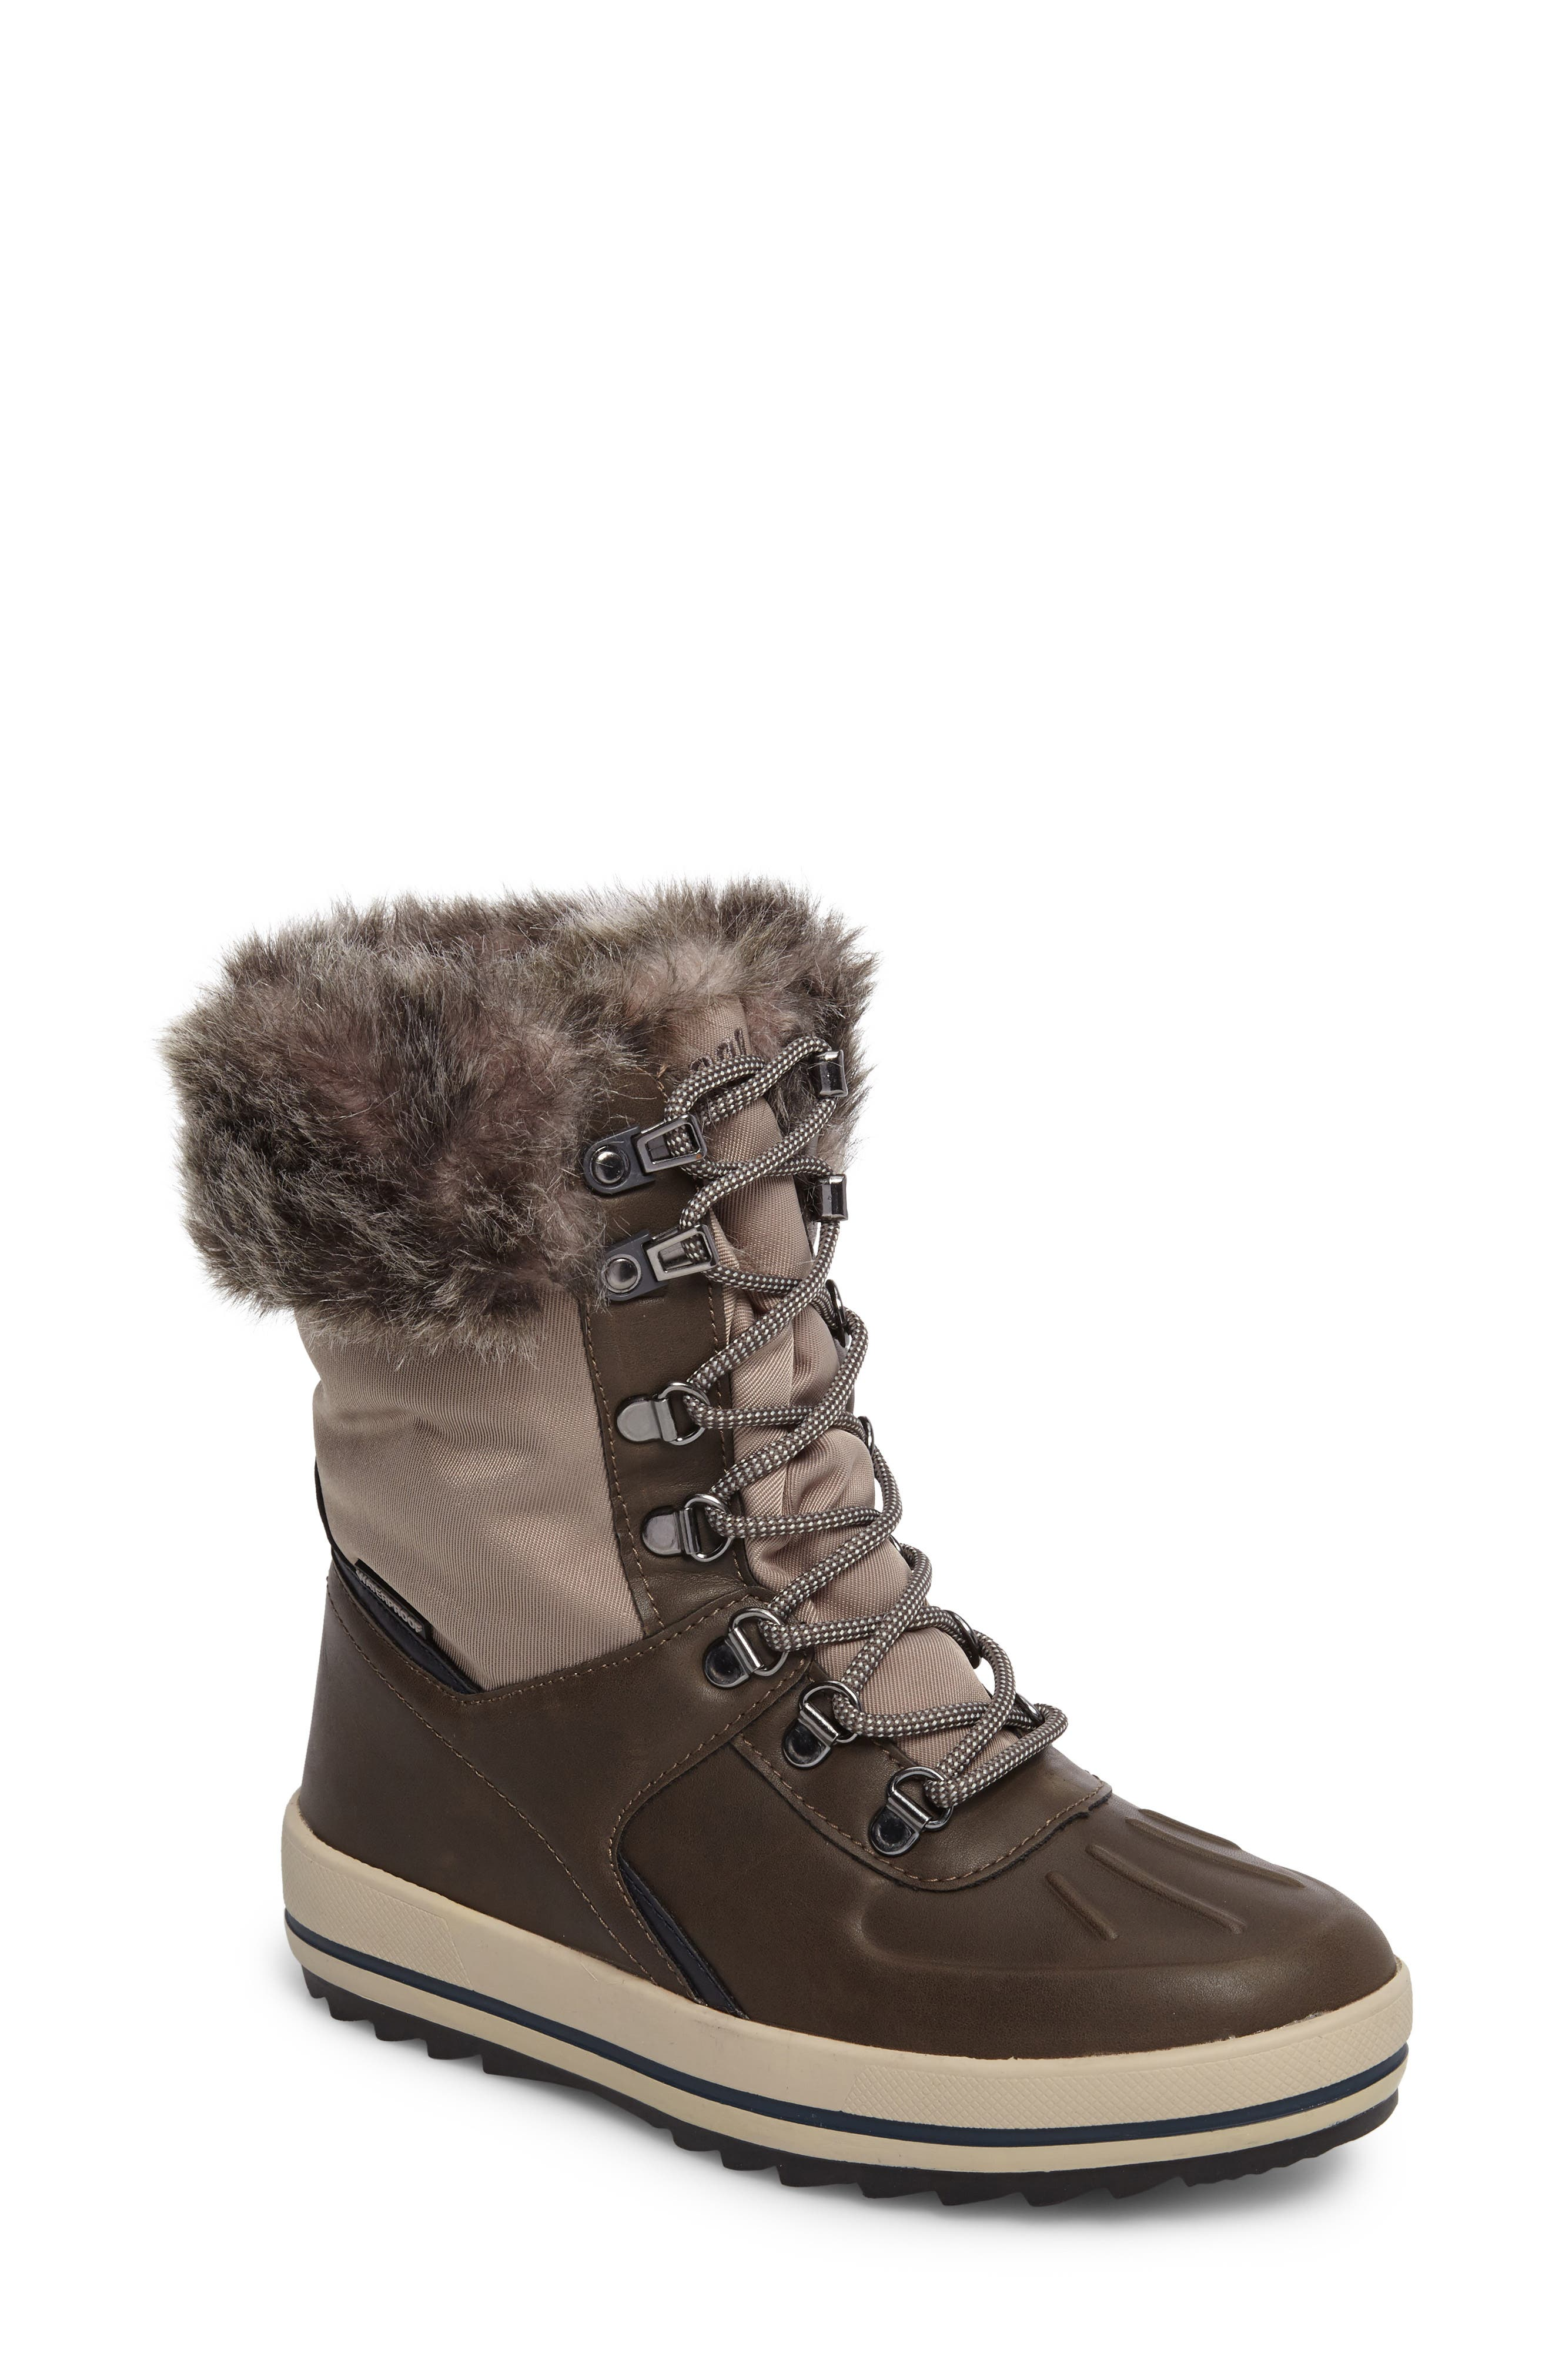 Viper Waterproof Snow Boot with Faux Fur Trim,                             Main thumbnail 1, color,                             Taupe/ Oatmeal